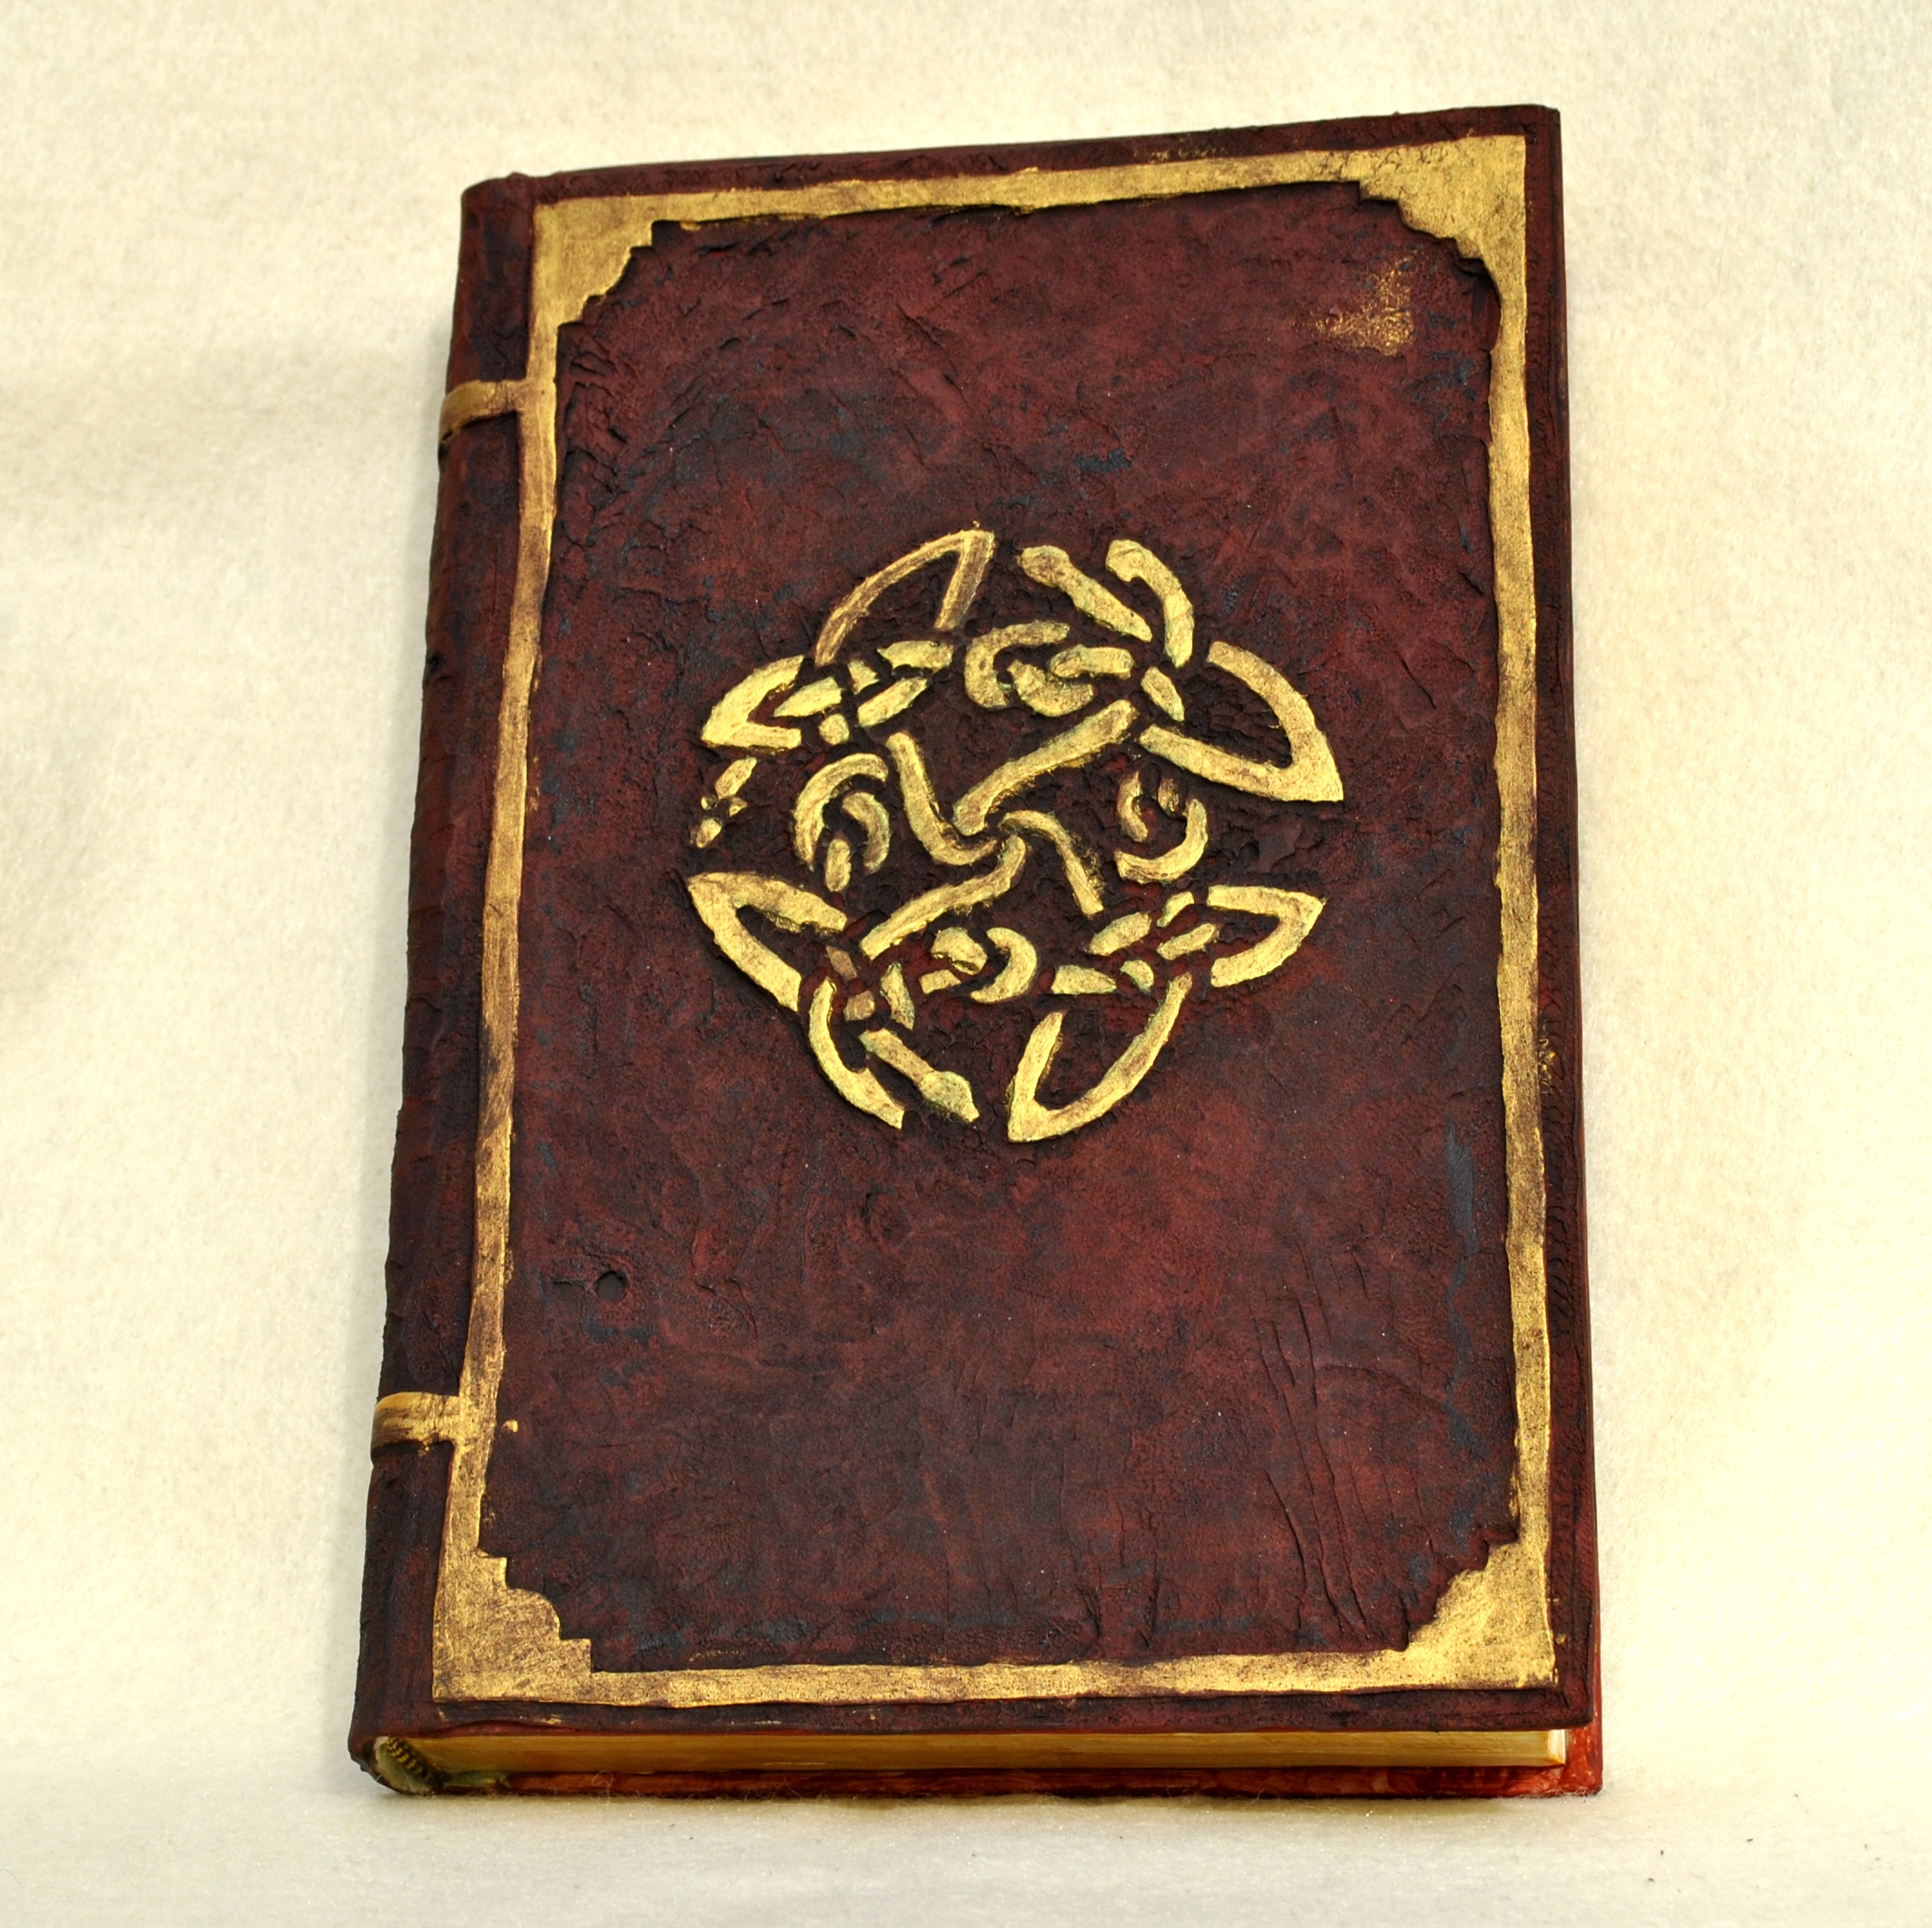 Fake Old Book Safe | Wyrd Cynthia: The Crafty Geek